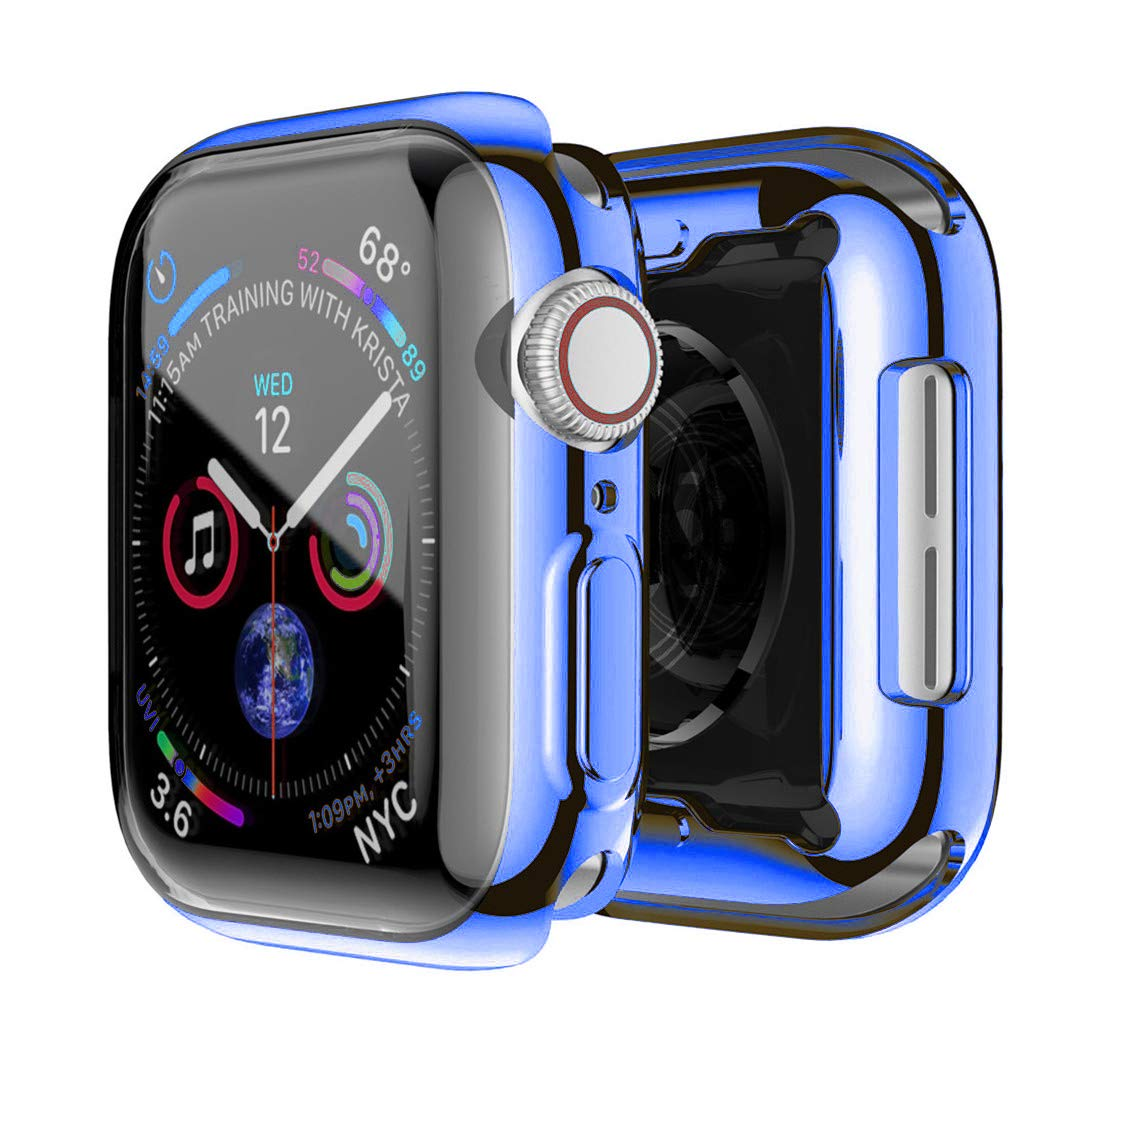 Compatible Apple Watch Screen Protector 44mm Blue Case, Built-in Screen Protectors Full Front Plated Soft TPU All-Around Shockproof Bumper Smartwatch Iwatch Cover for Apple Watch Series 4 by HACASE